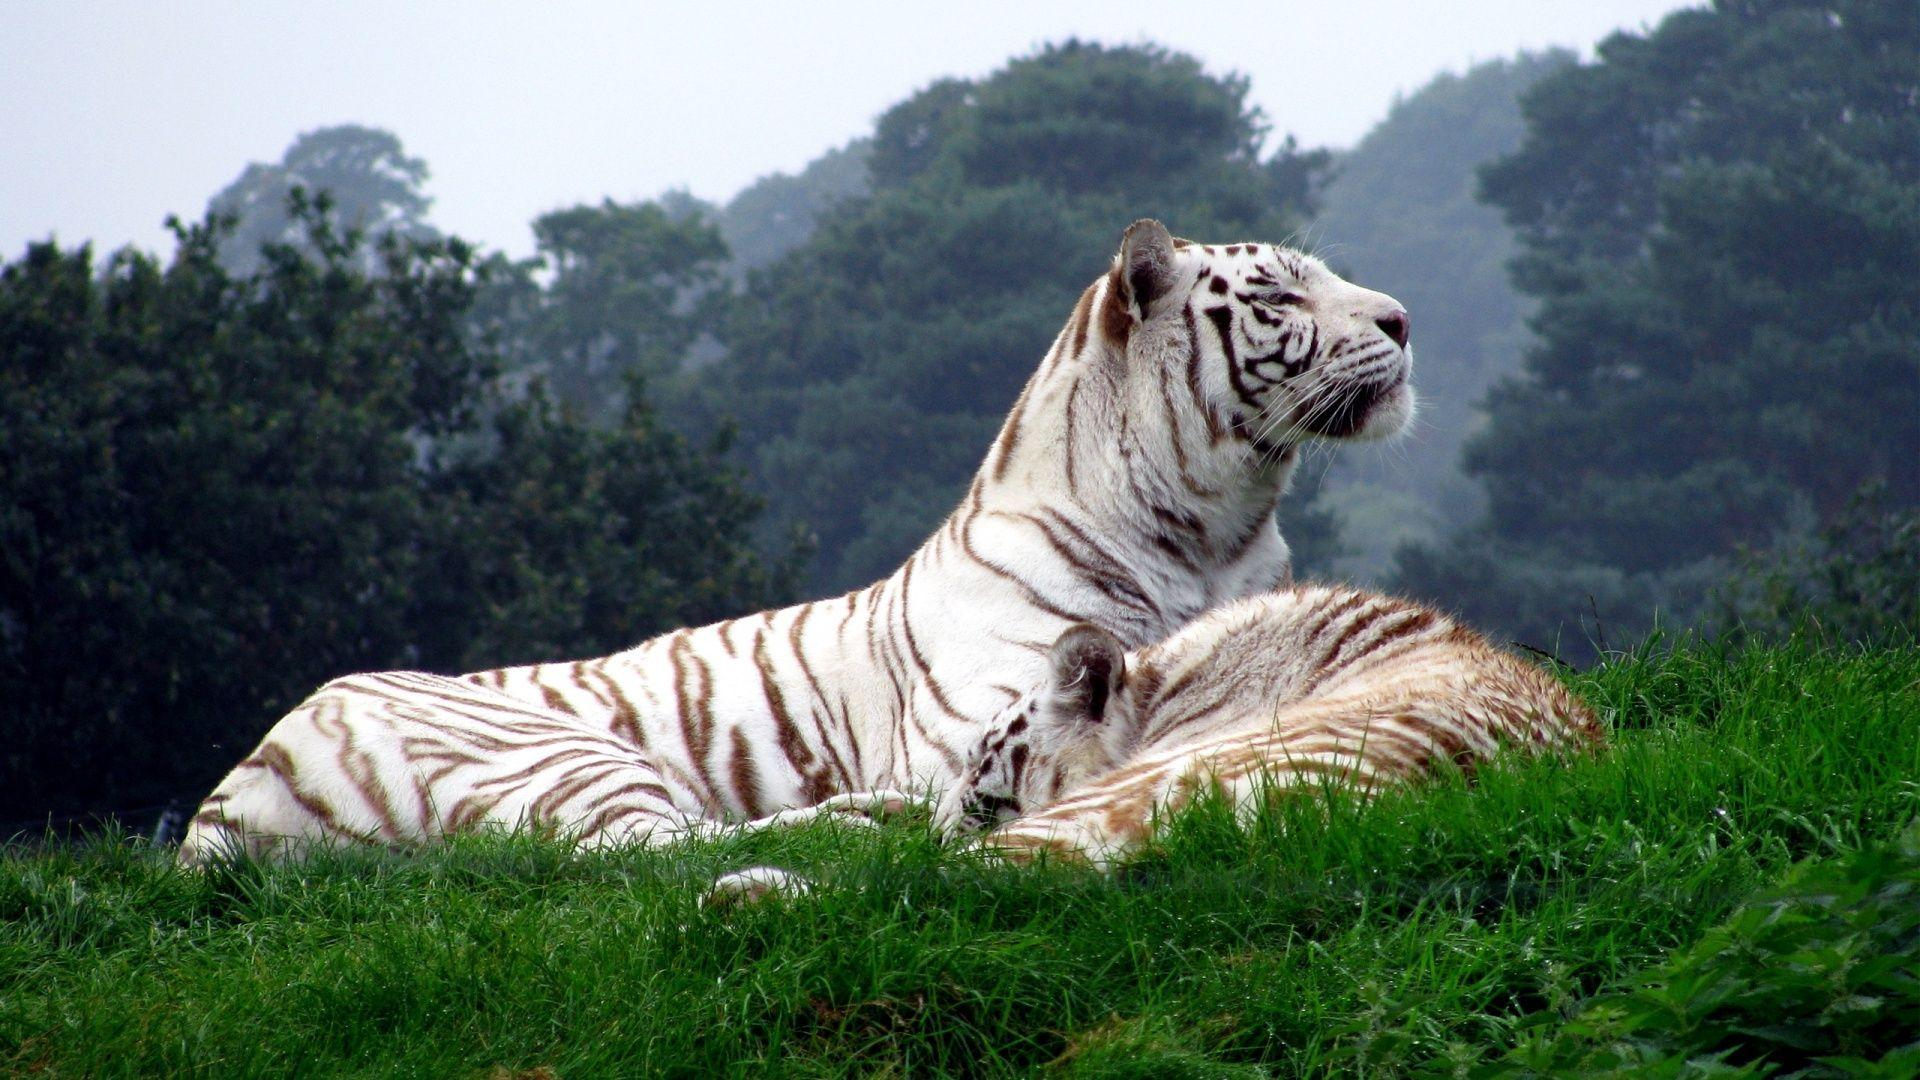 wallpaper hd white tiger - photo #11